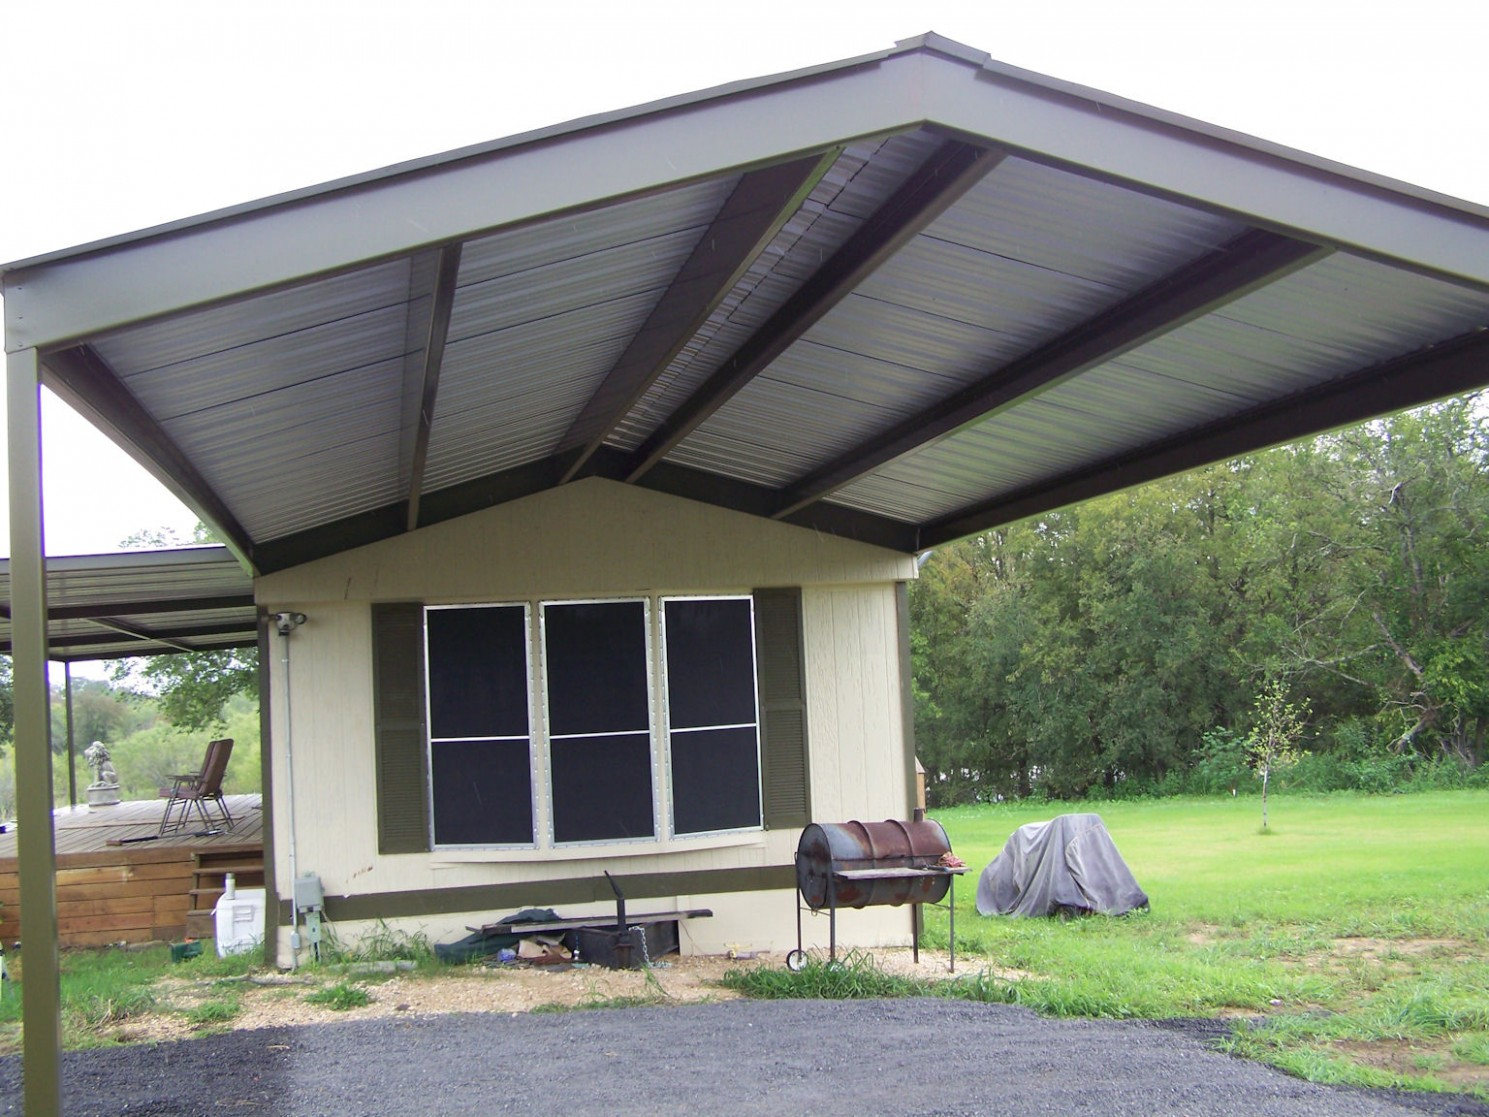 16 Unbelievable Facts About Metal Carport Attached To House | metal carport attached to house